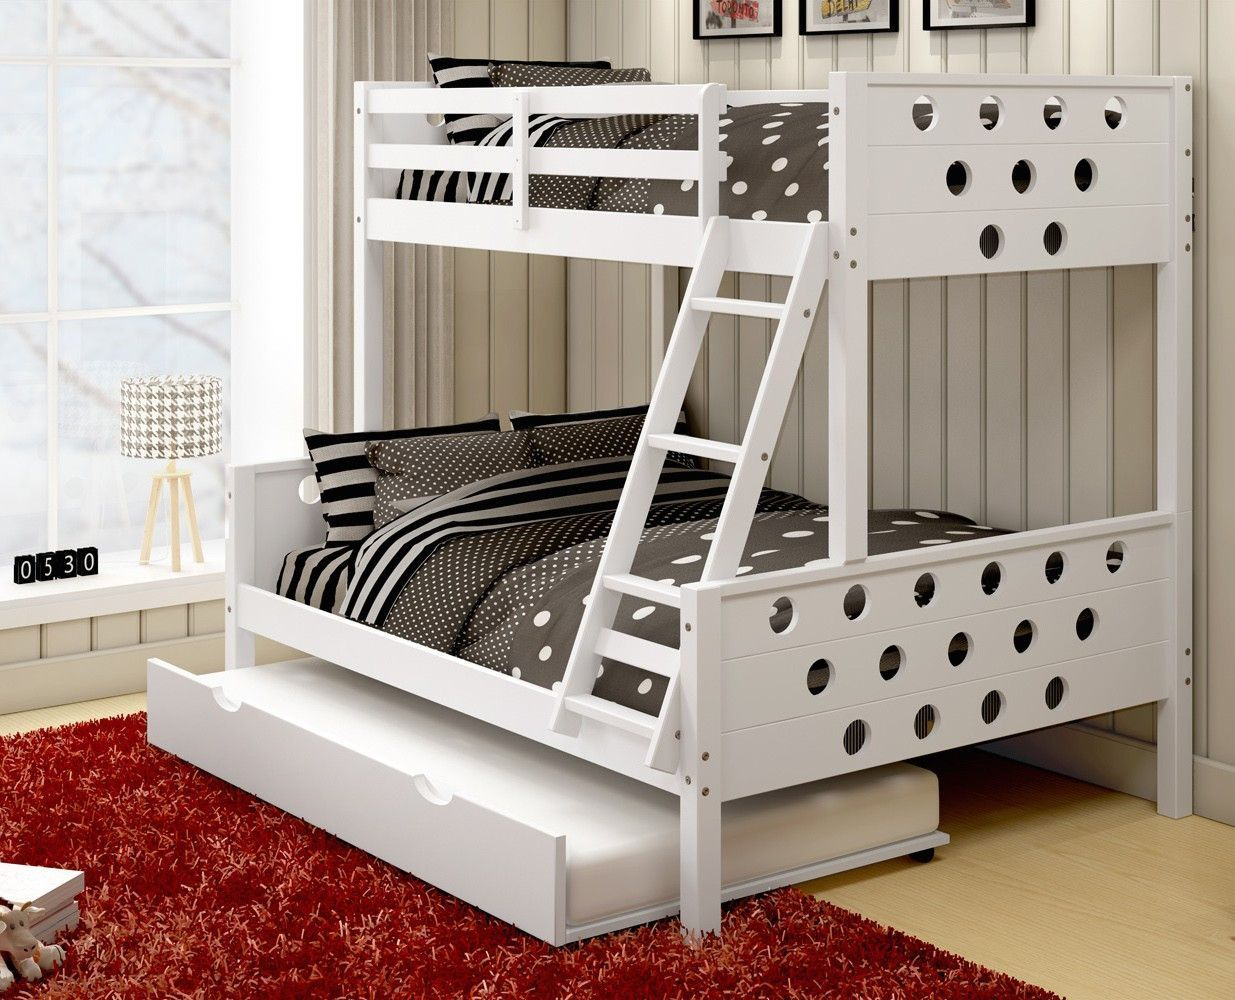 Our Twin Over Full Trundle Bunk Beds In White Feature A Fun